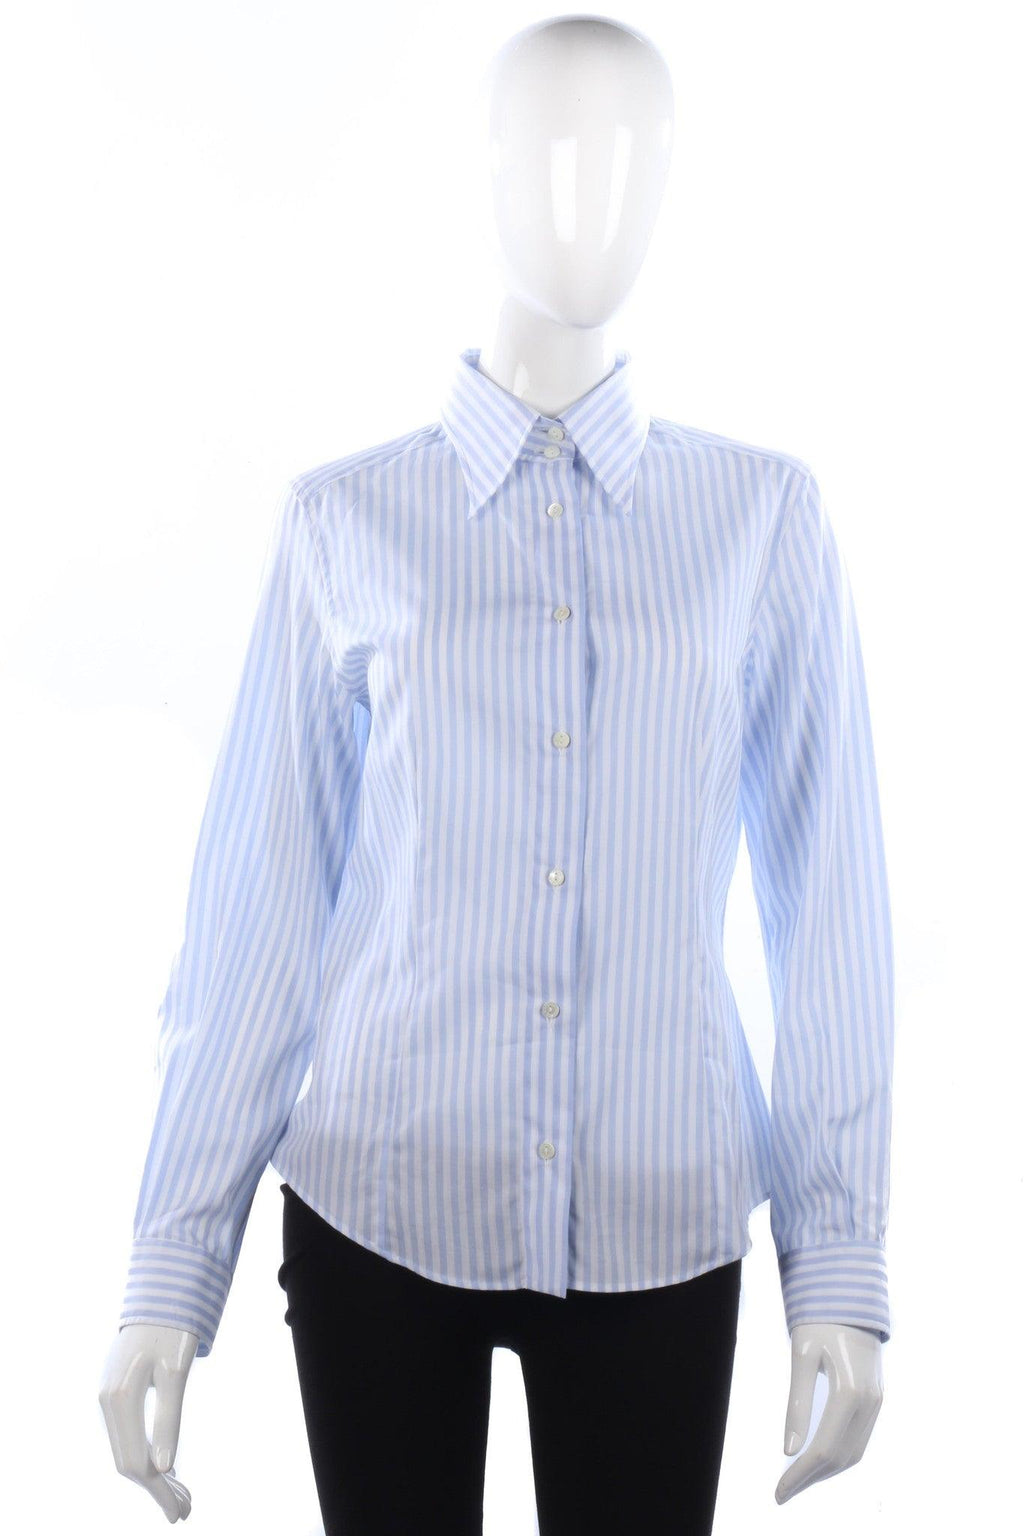 Dolce & Gabbana Cotton Ladies Shirt Blue and White Stripes IT44 UK12